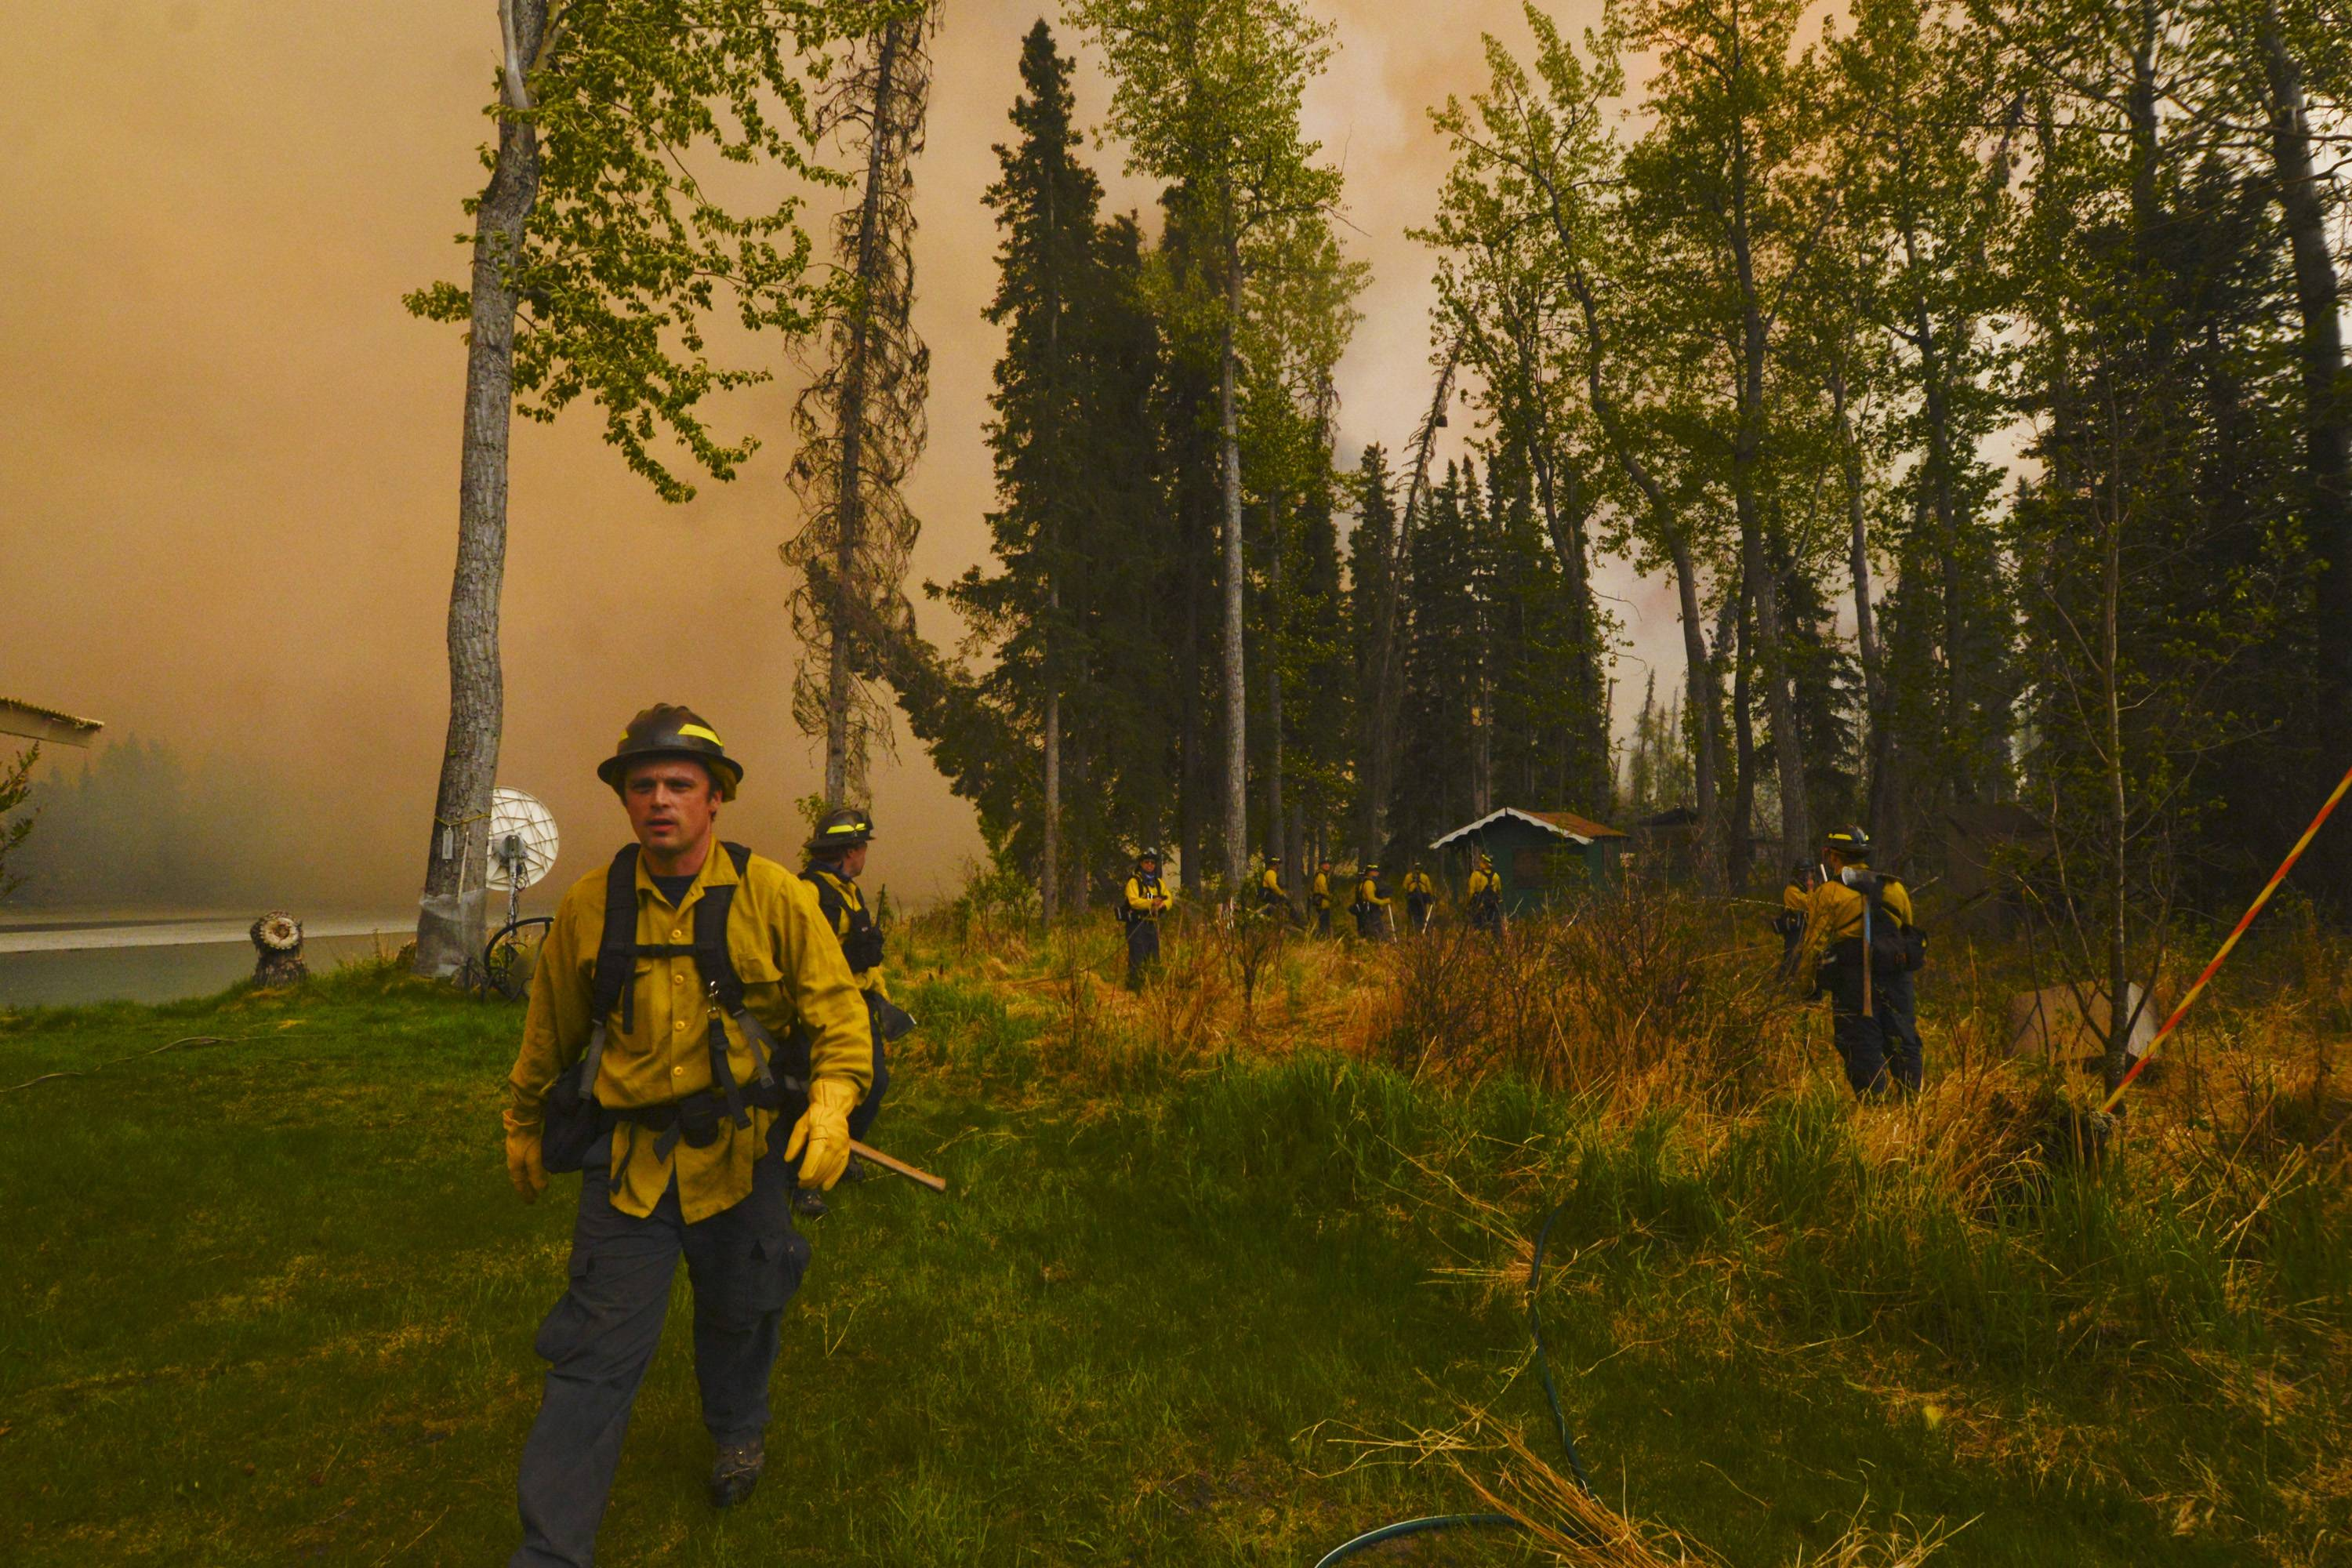 Central Emergency Services firefighters assess whether they can protect a property Sunday, May 25, 2014, in the Funny River community of Soldotna, Alaska. A massive wildfire pushed by wind in Alaska's Kenai Peninsula south of Anchorage continued to explode in size, leading to mandatory evacuations of 1,000 structures, officials said Sunday.